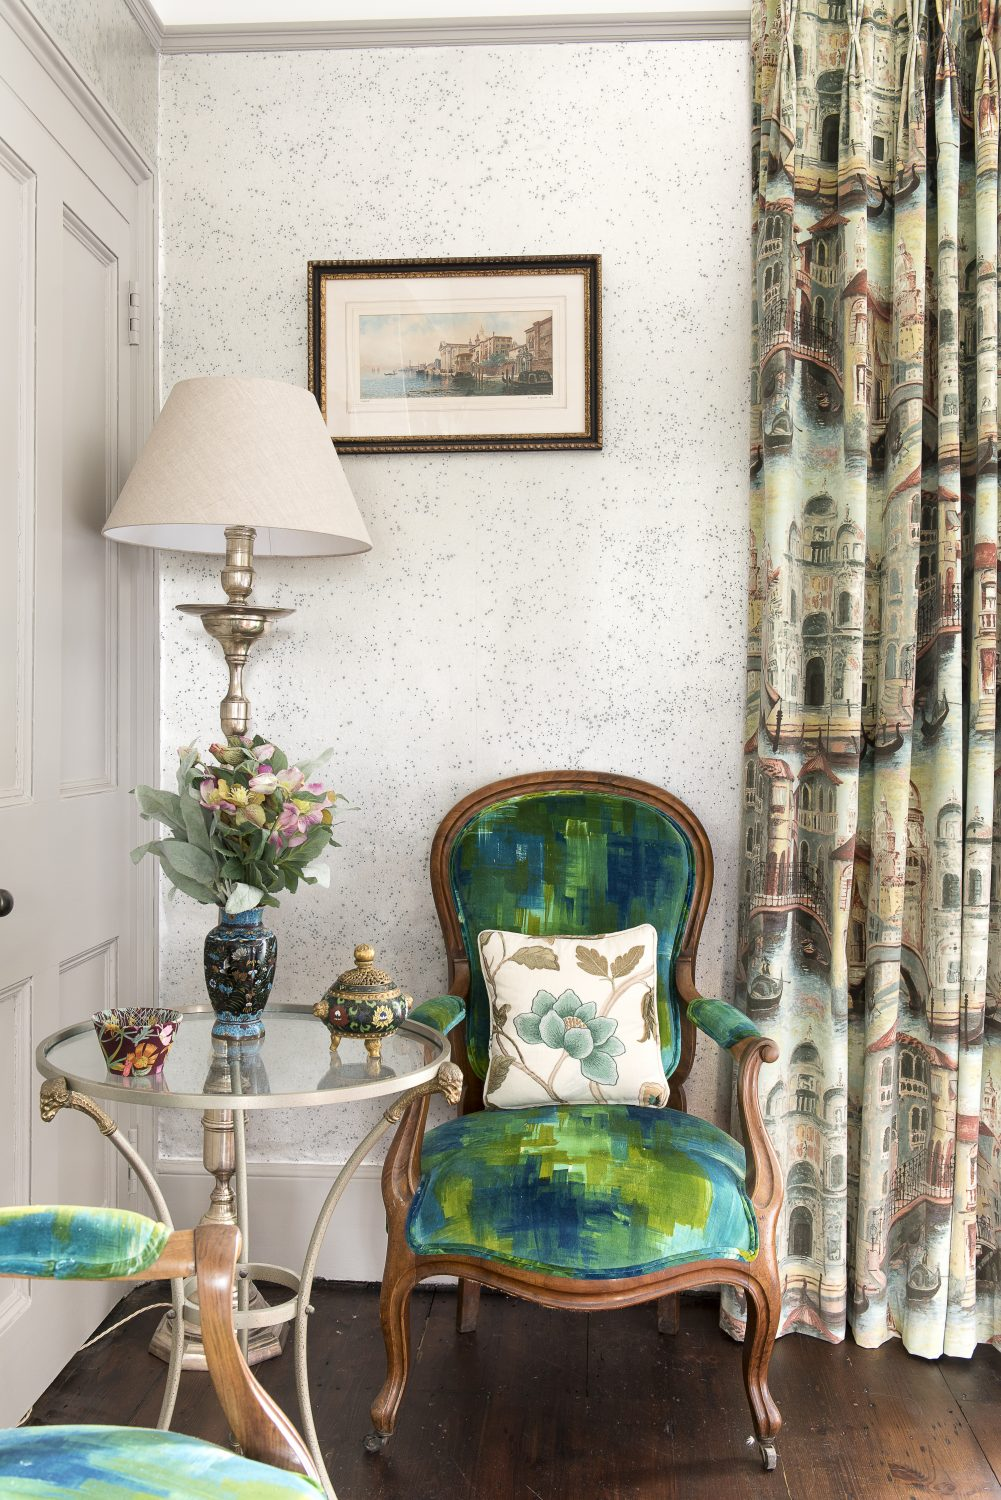 The Venice bedroom features Venetian mirrors and curtains featuring Venetian scenes from Zoffany